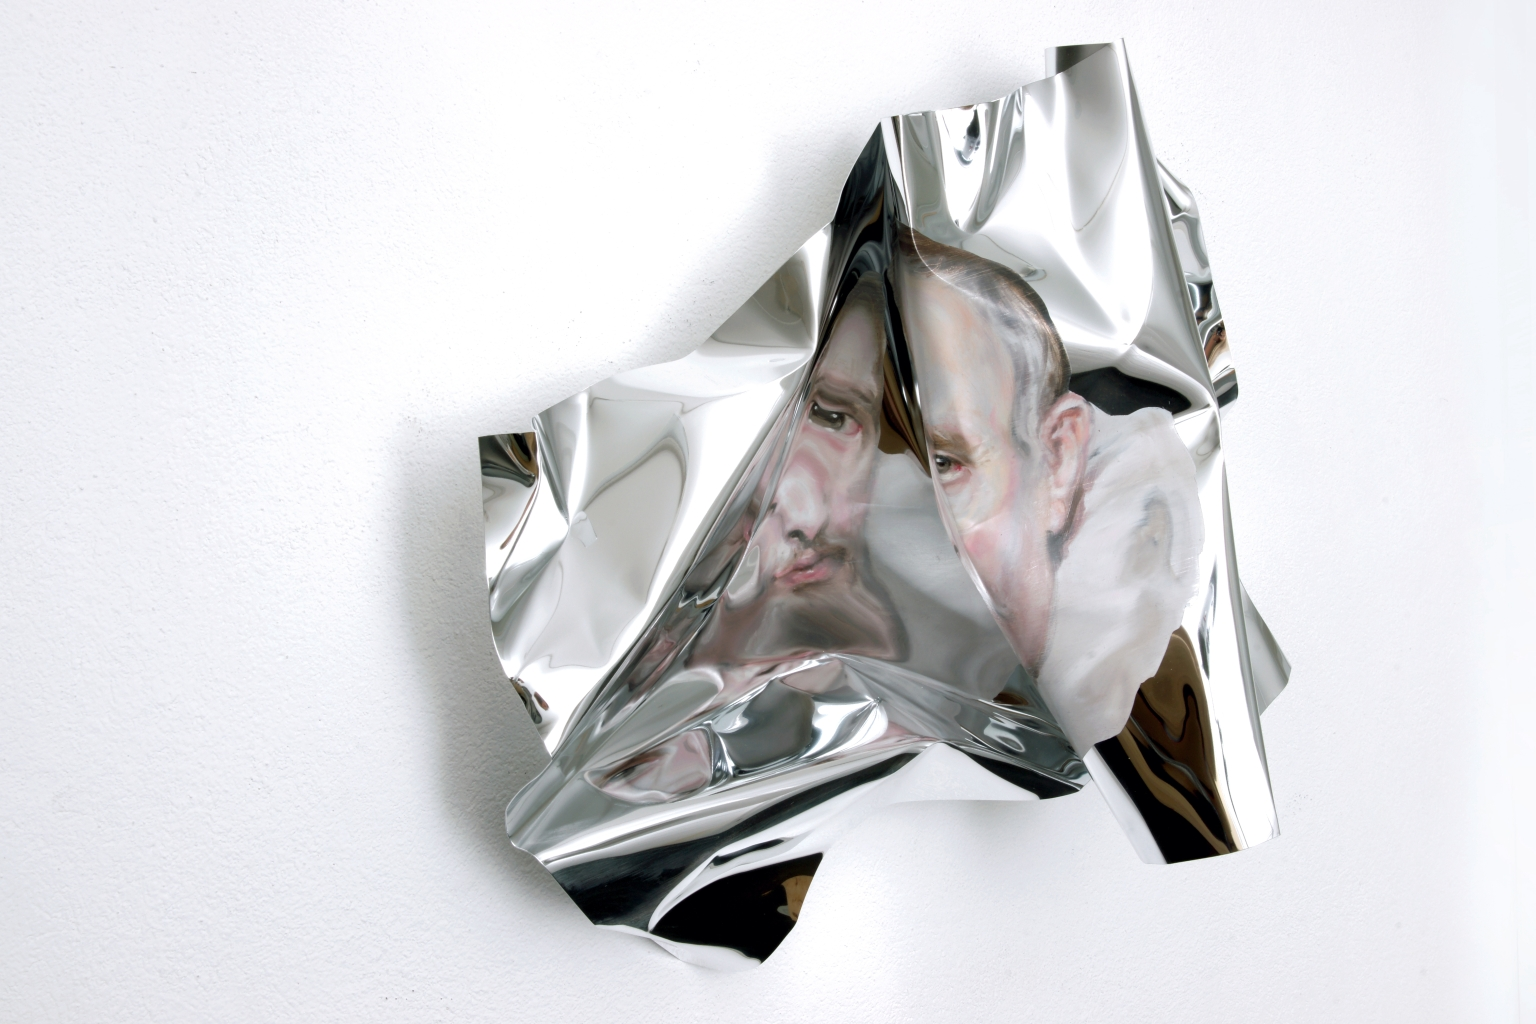 16-Martin-C-Herbst-Oil-Painting-on-Folded-Mirror-Polished-Aluminium-Foil-www-designstack-co